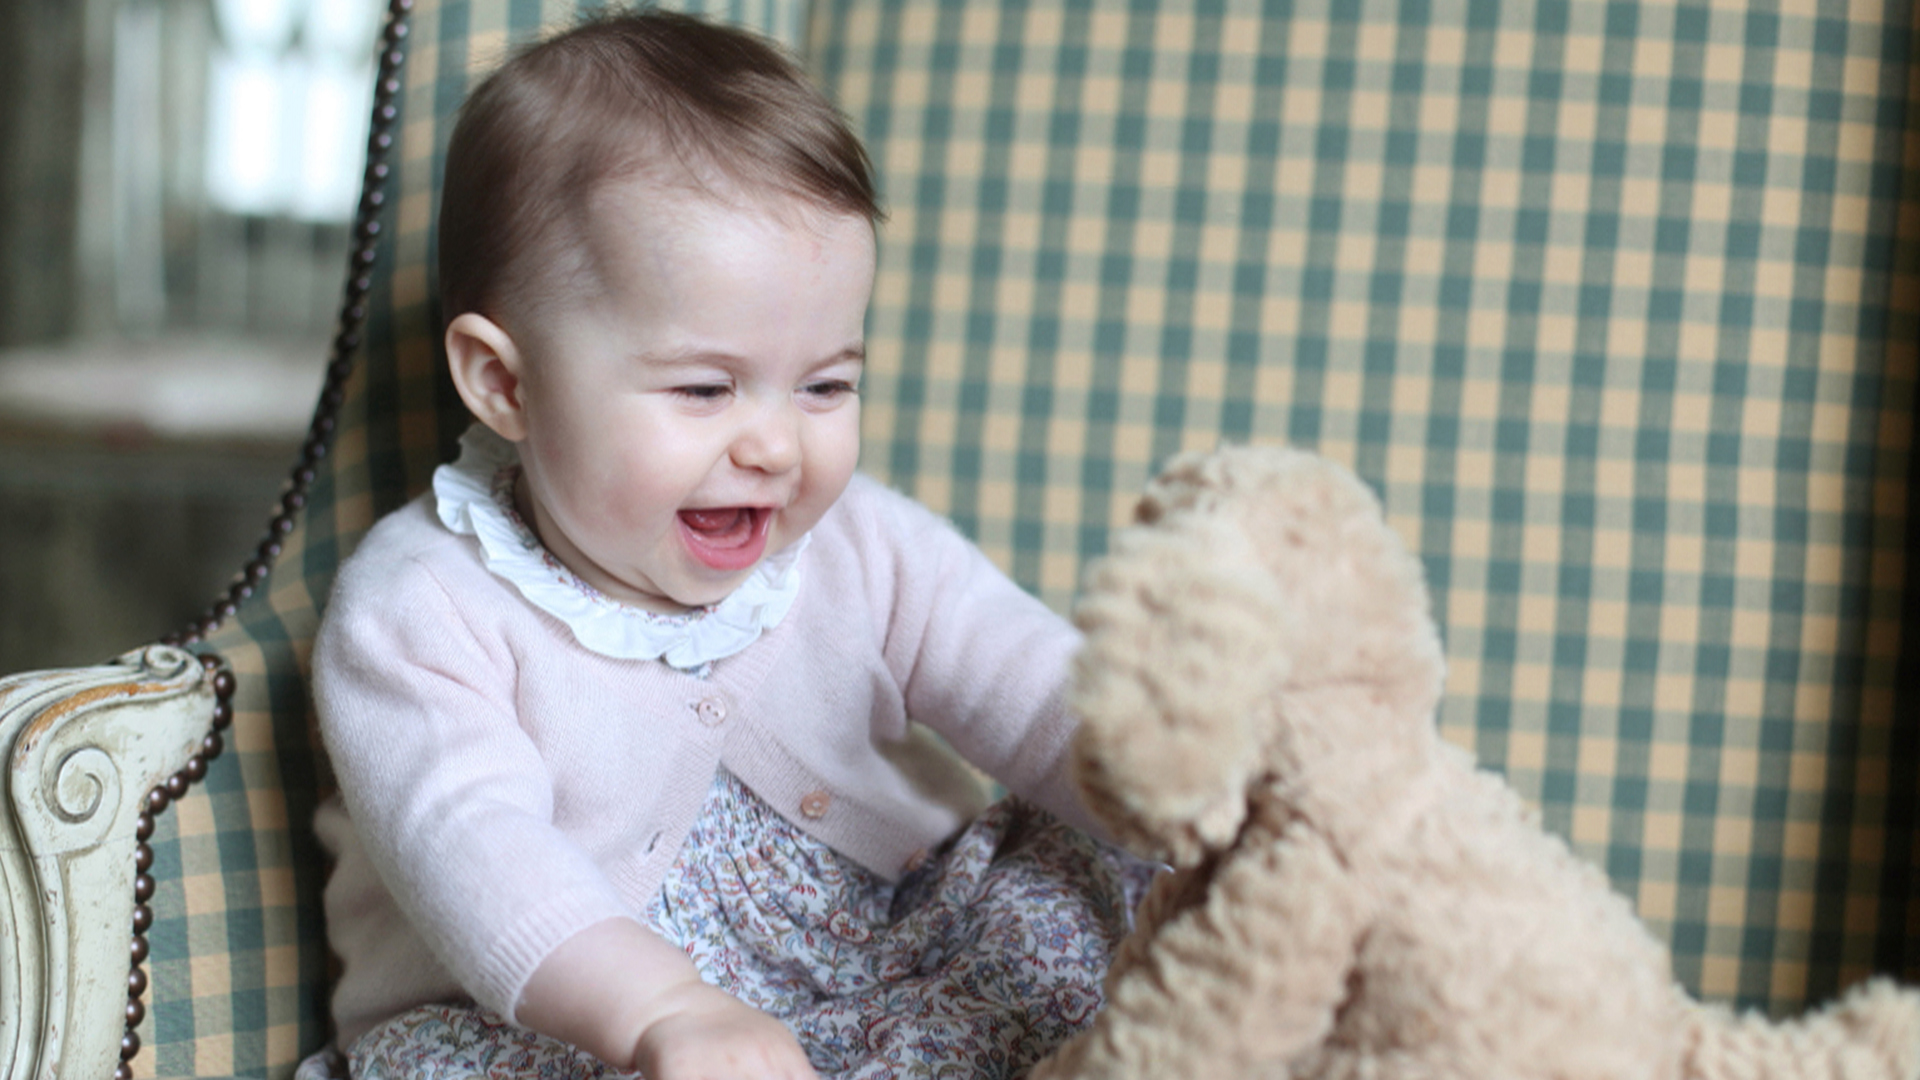 New Photos Show Britain's Princess Charlotte Playing